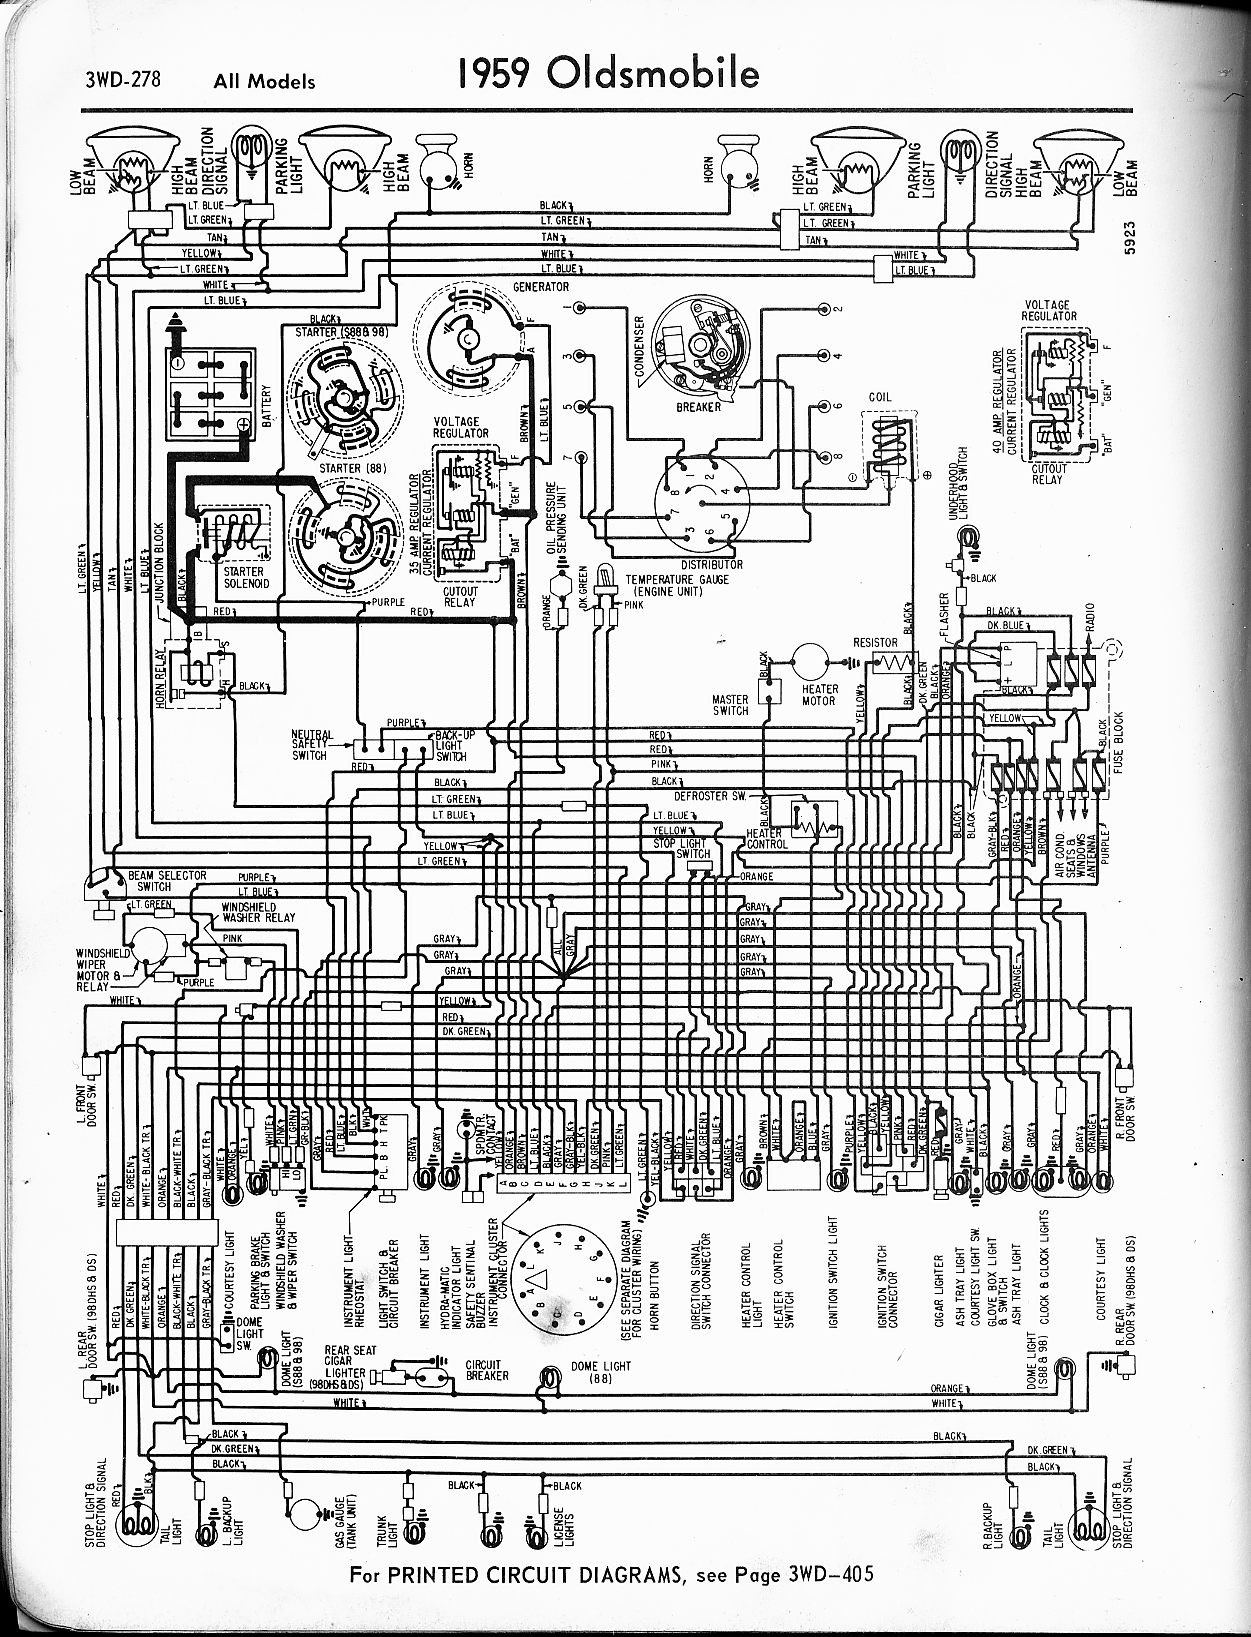 2001 Oldsmobile Alero Engine Diagram 1994 Oldsmobile Wiring Diagrams  Automotive Wiring Diagram • Of 2001 Oldsmobile